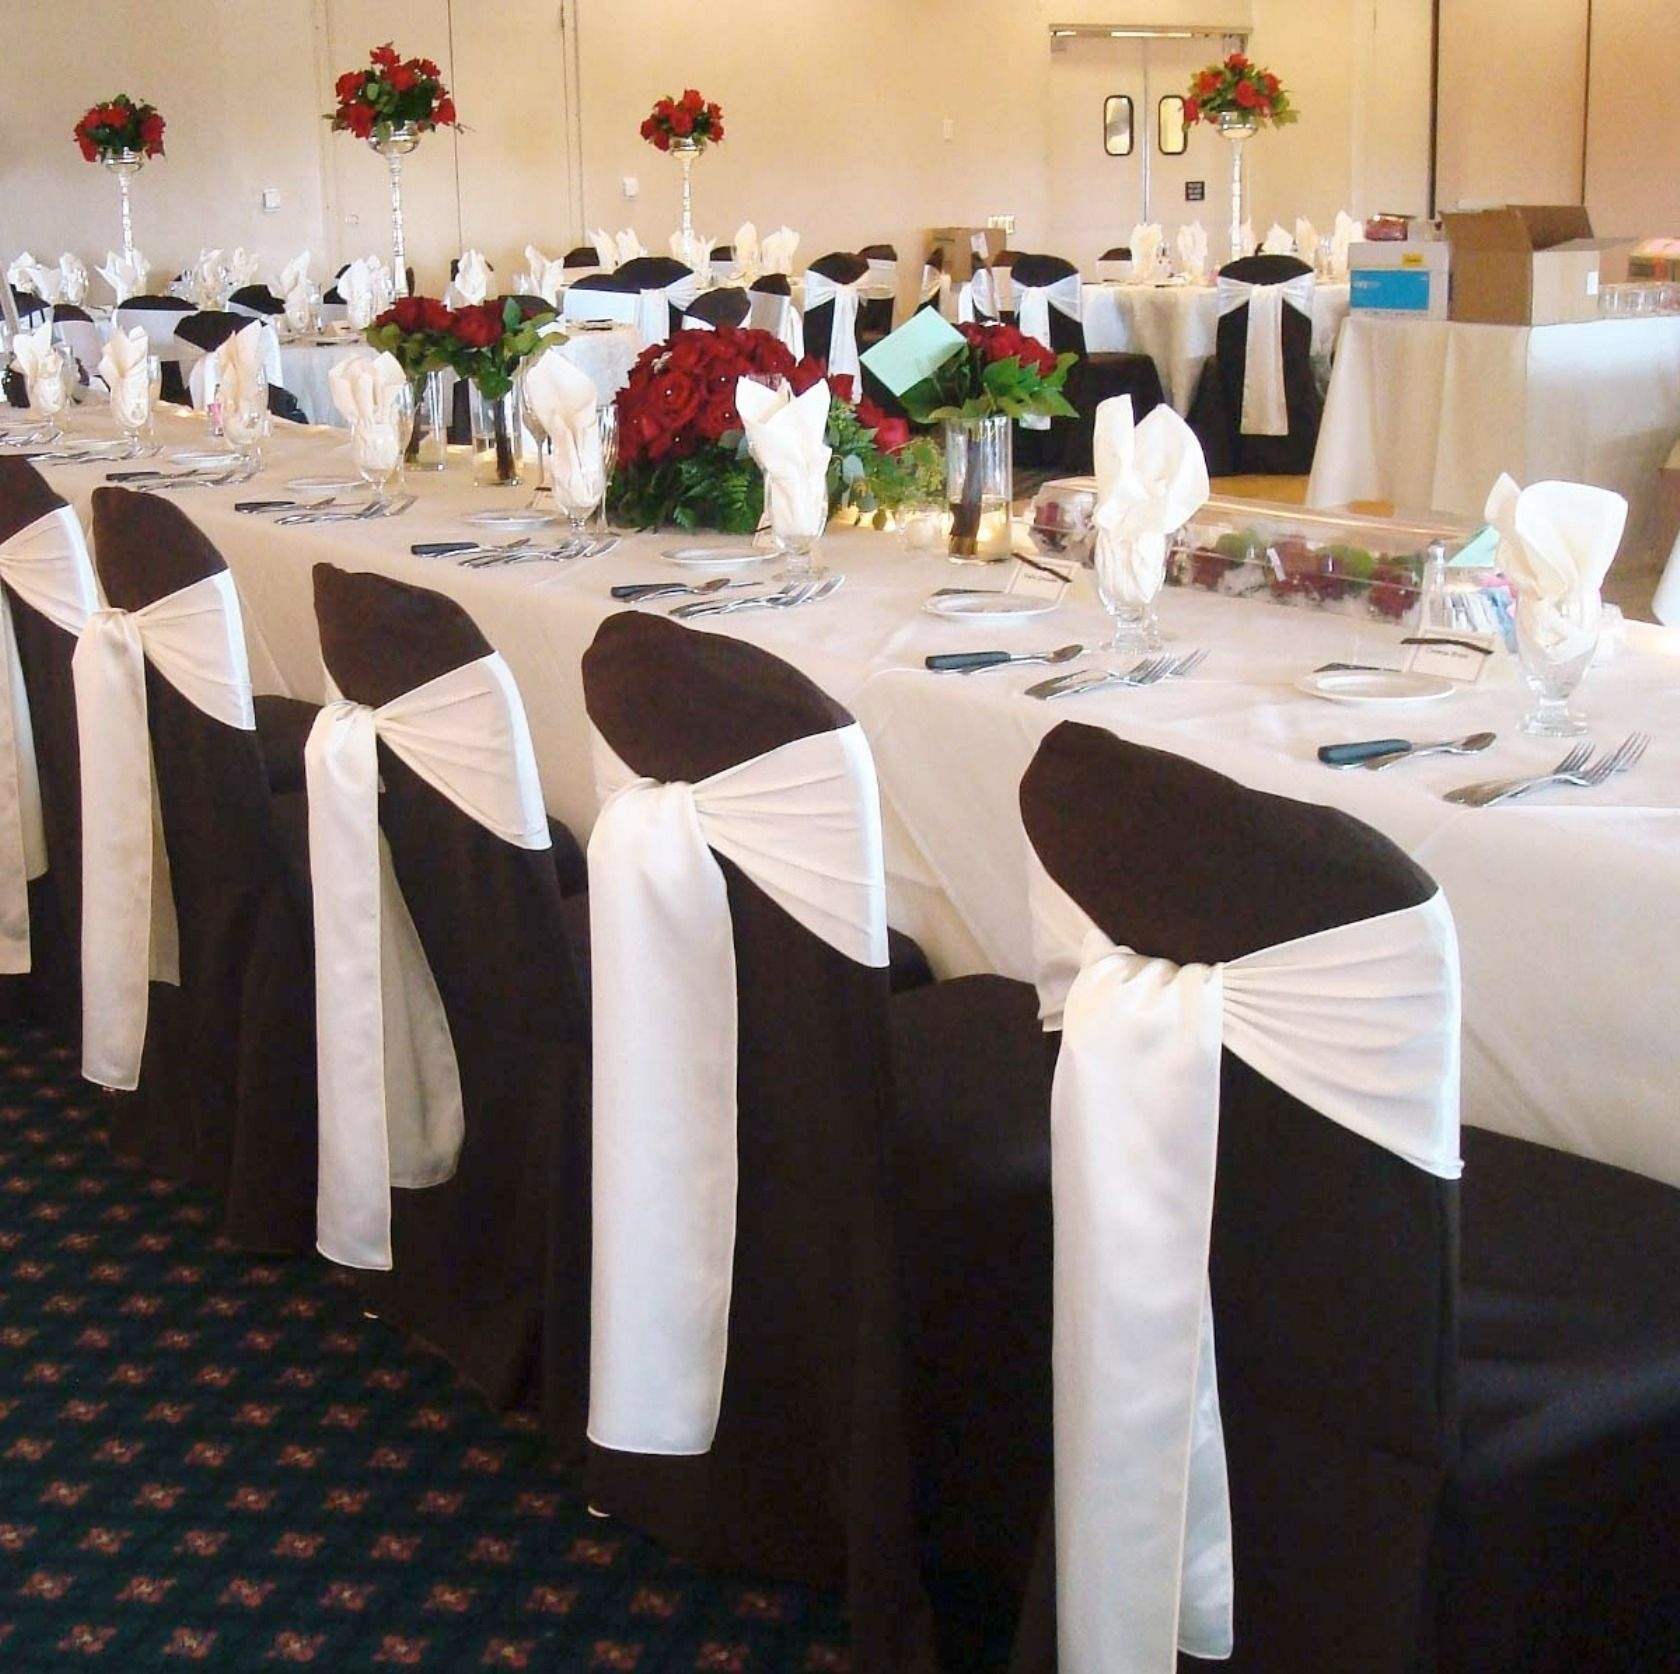 Decorative Chair Covers For Plastic Chairs | http://images11.com ...